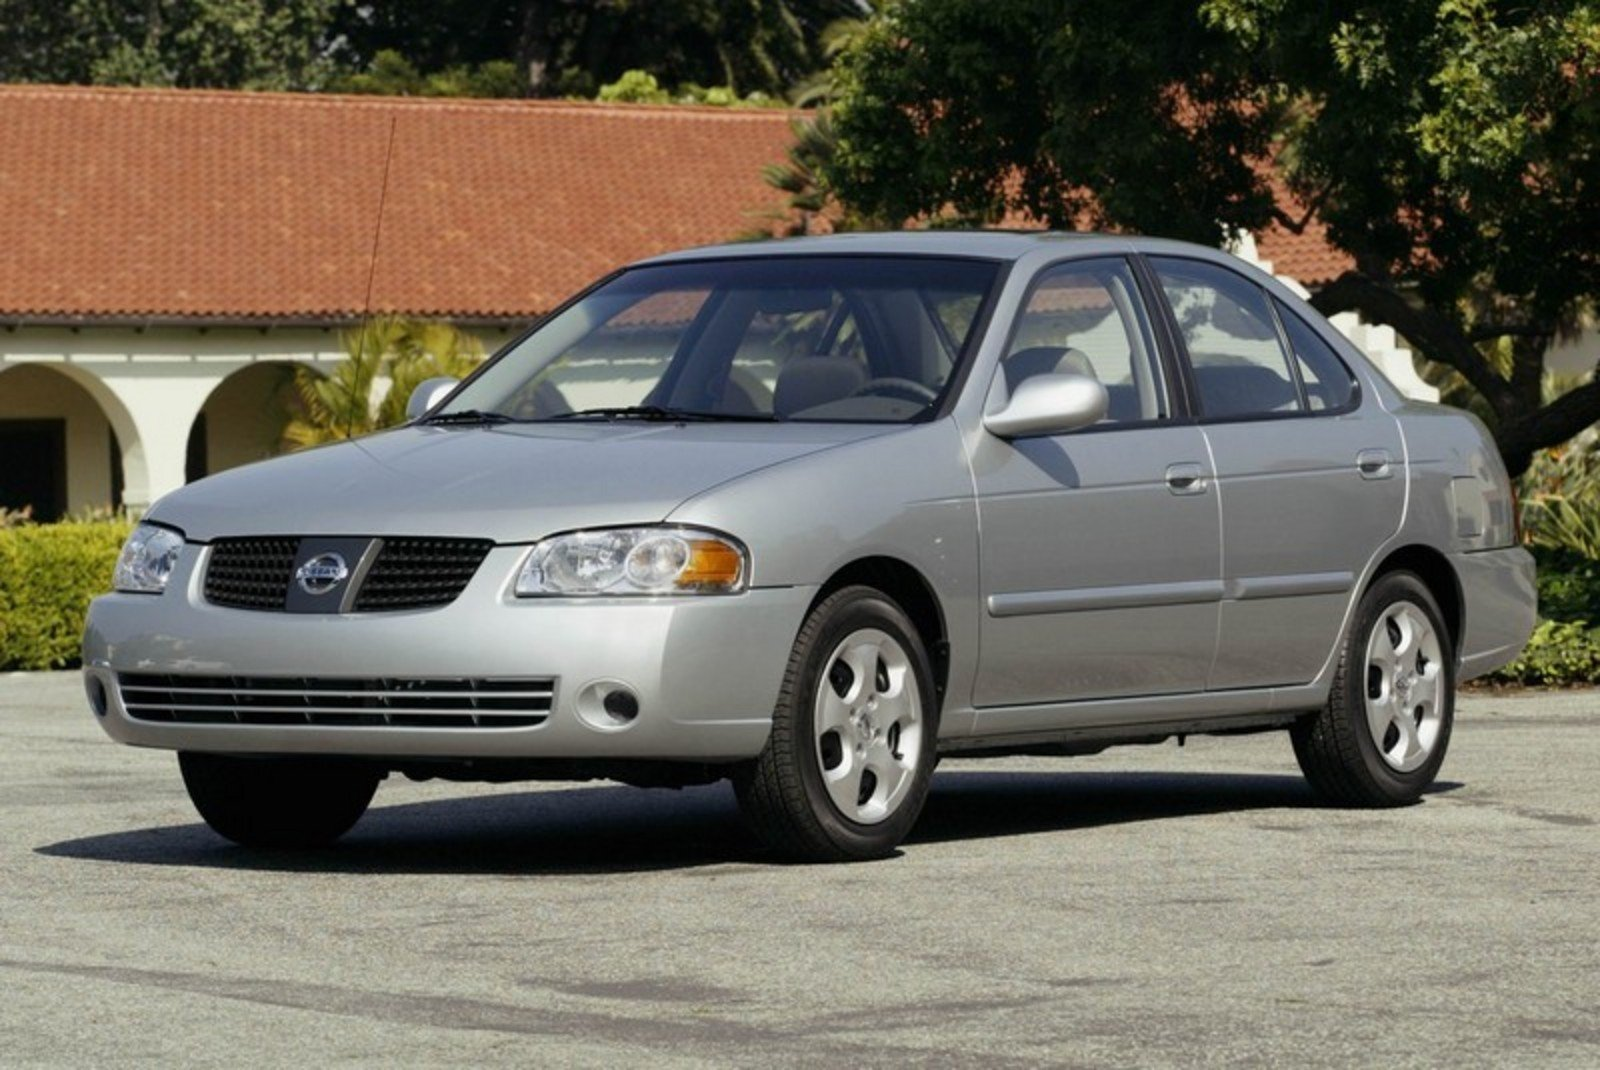 2006 nissan sentra review top speed. Black Bedroom Furniture Sets. Home Design Ideas